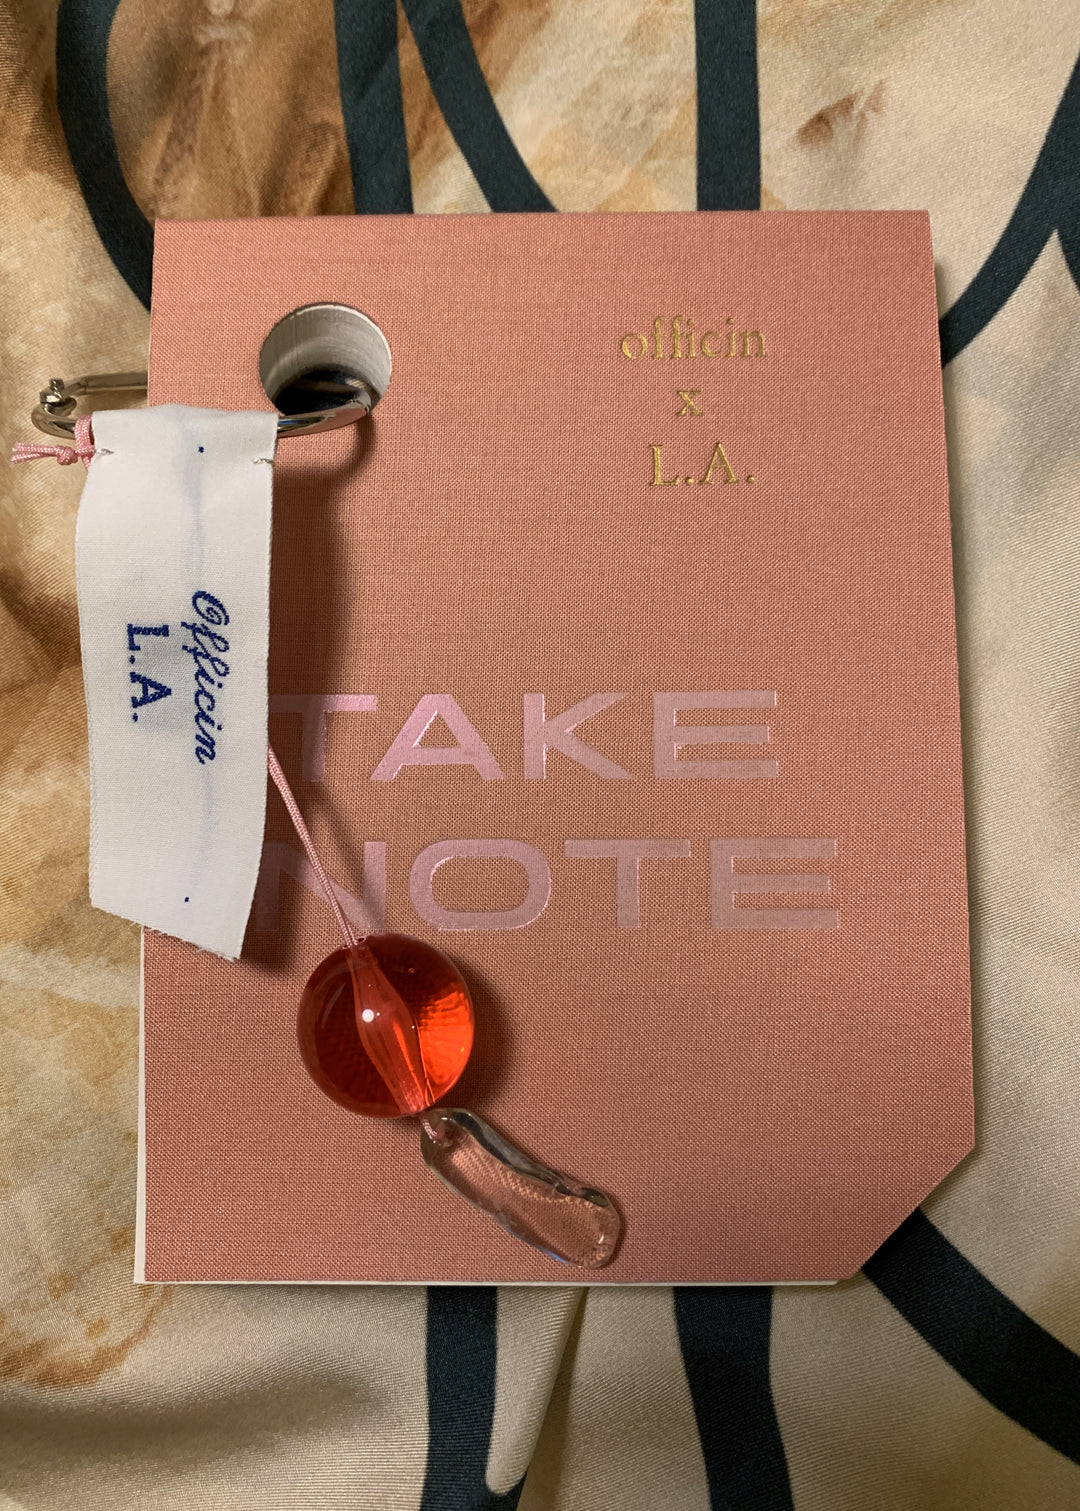 TAKE NOTE Officin x L.A. wearable notepad